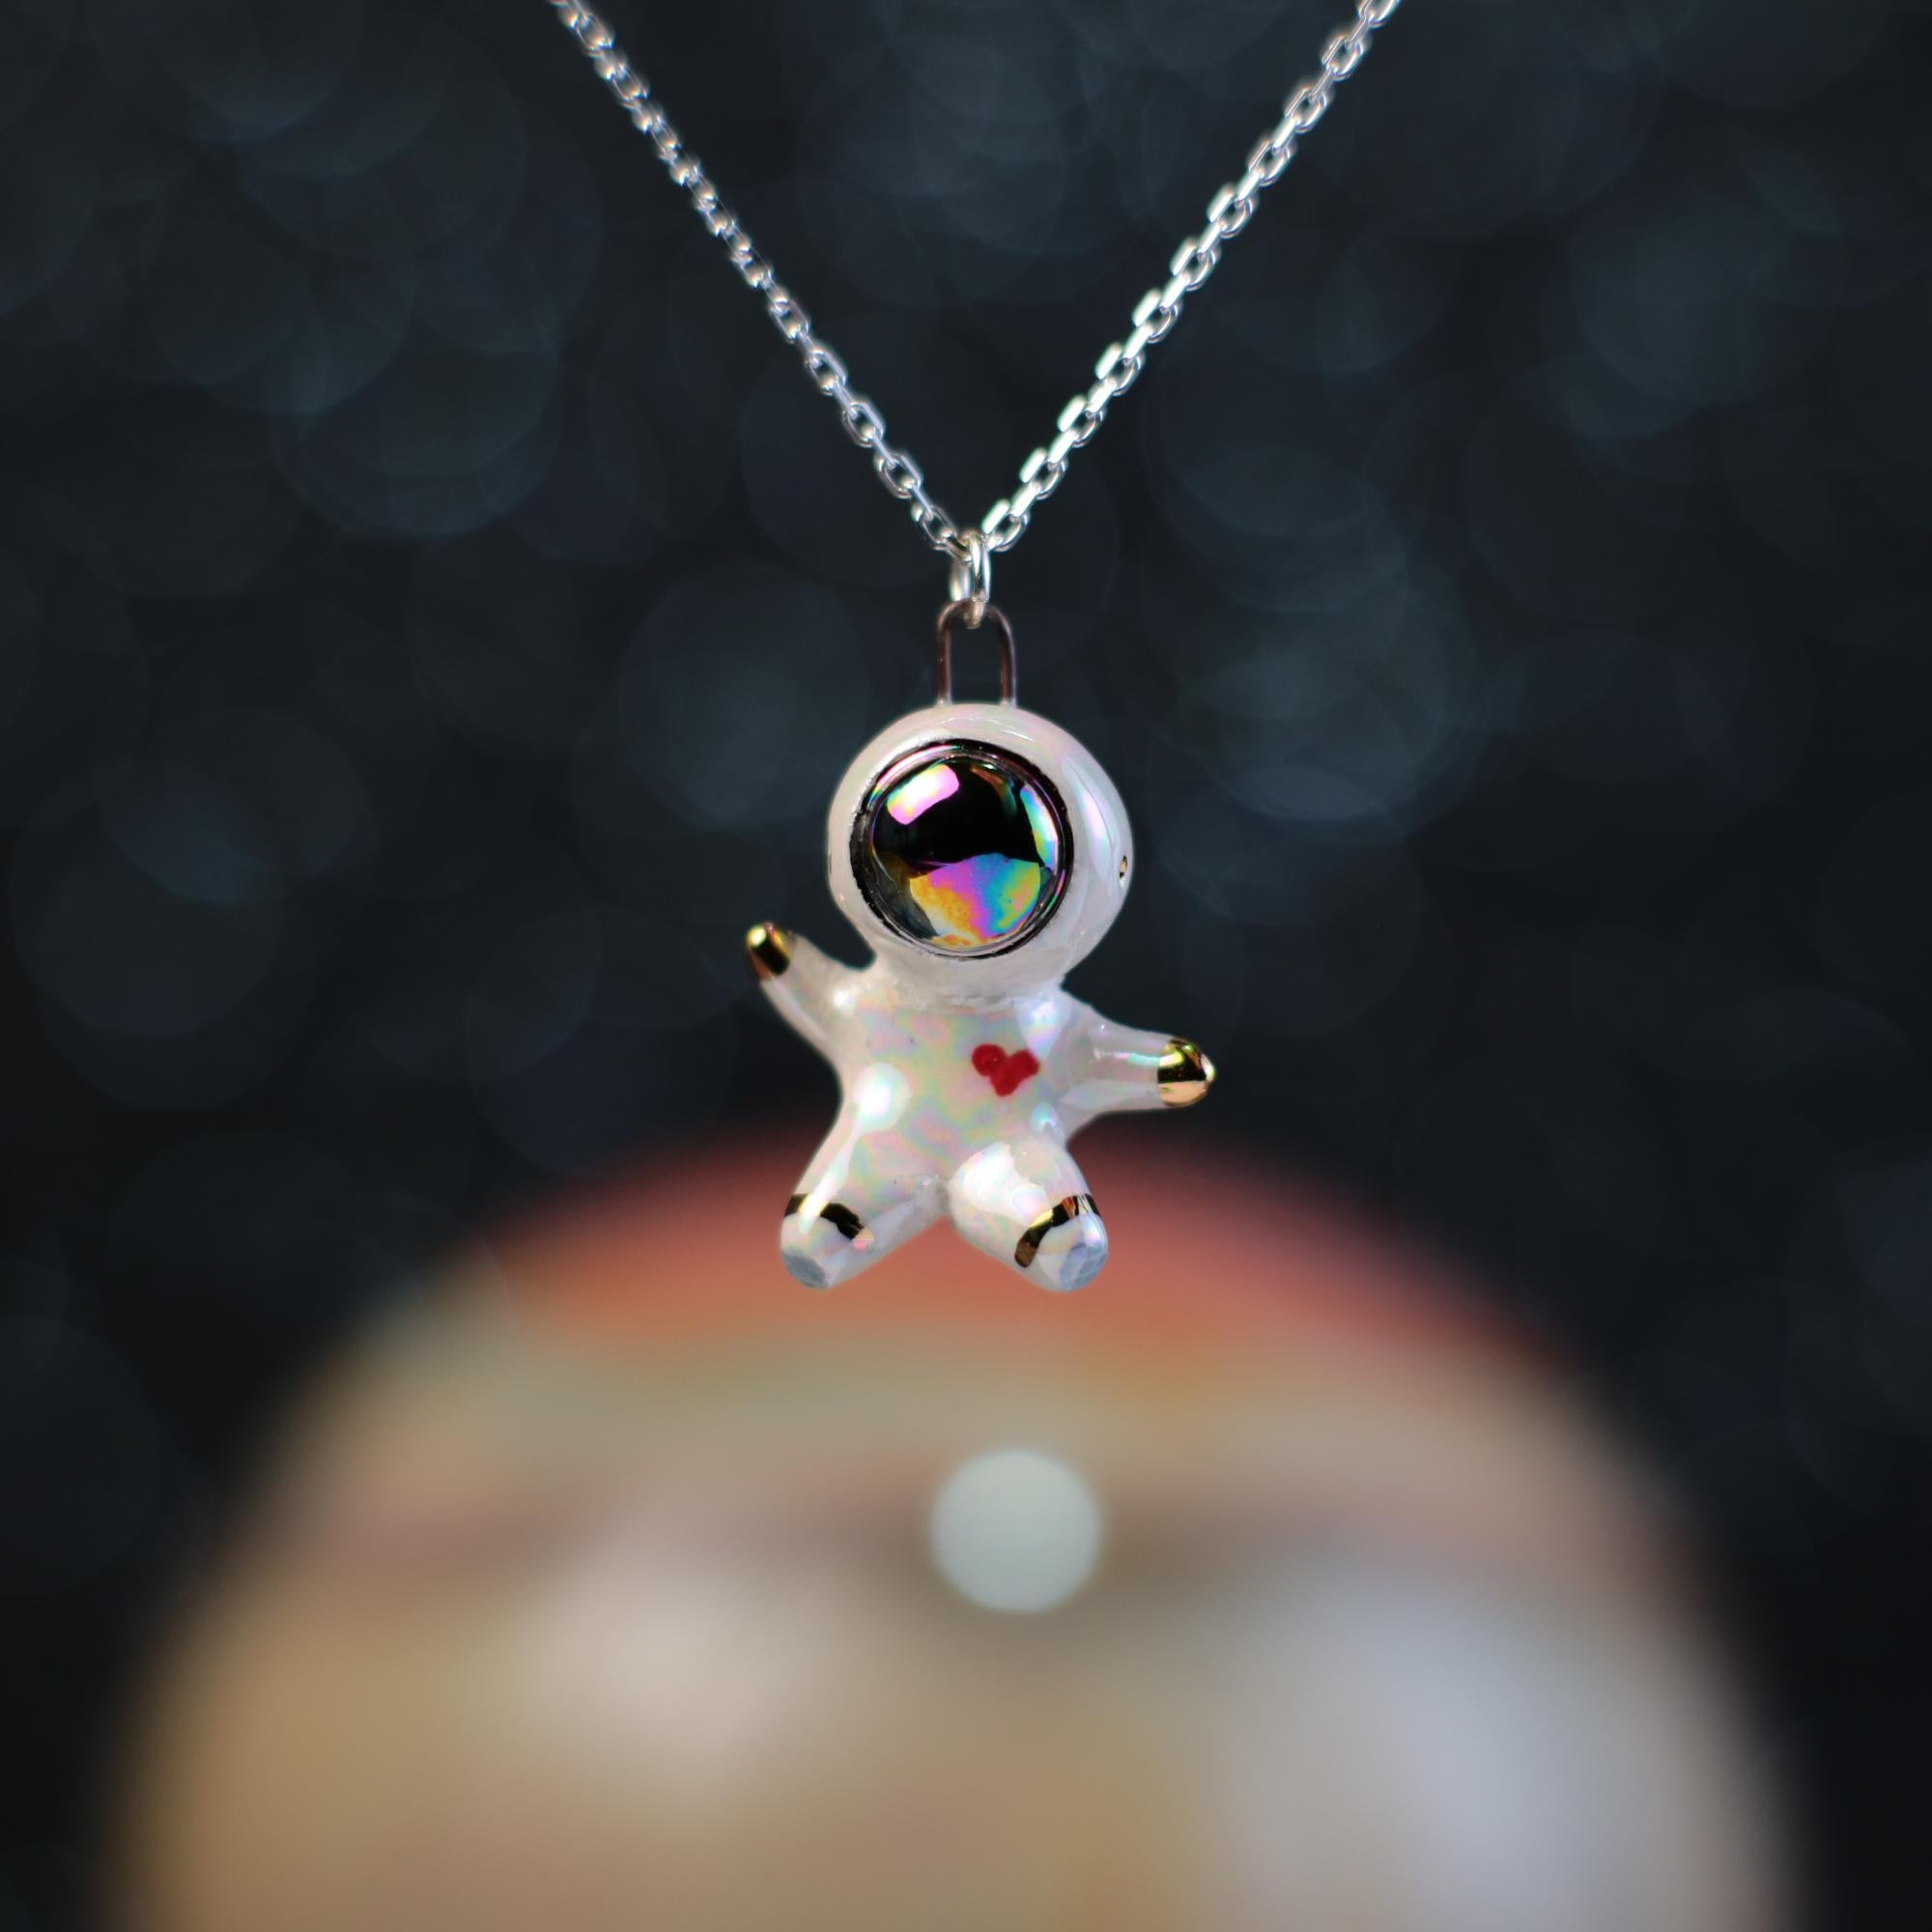 Rainbow Floating Heart Astronaut Necklace